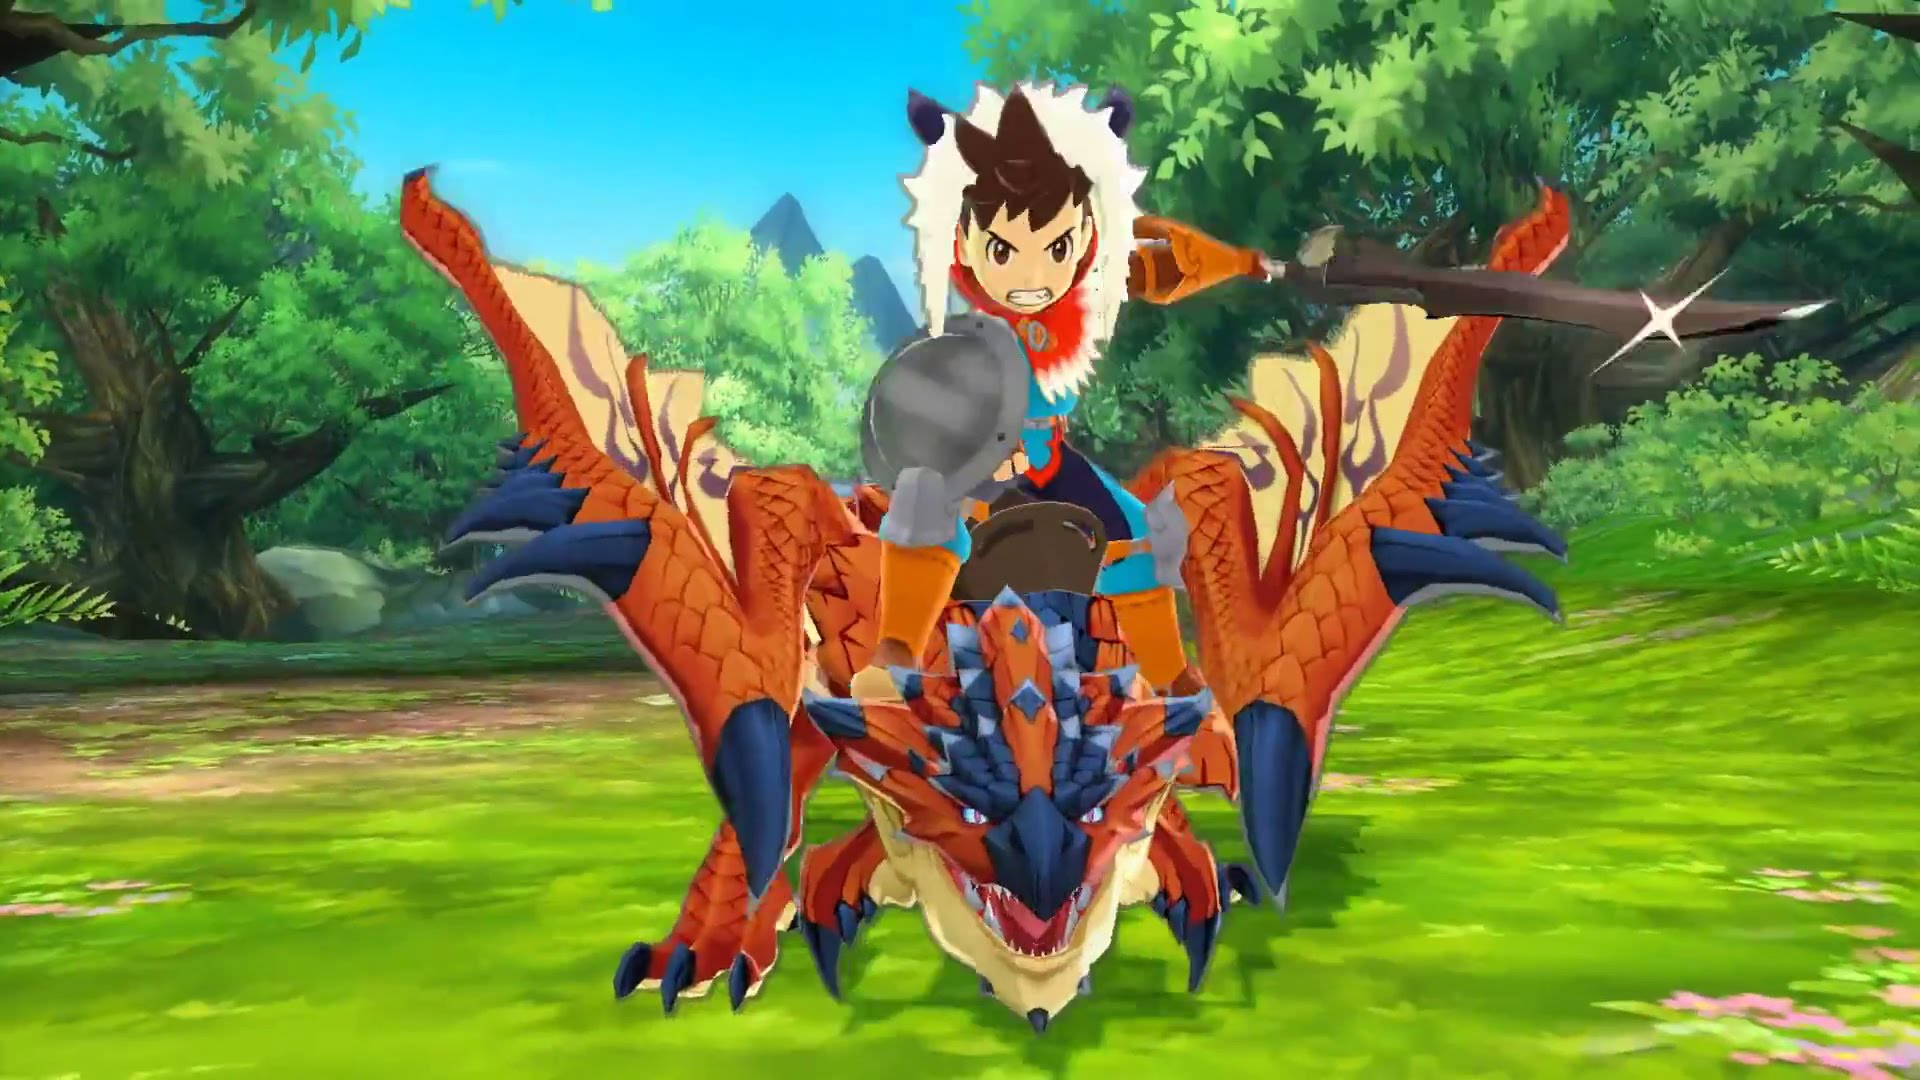 Modojo | Monster Hunter Stories Gets A New Trailer And Its Own Anime